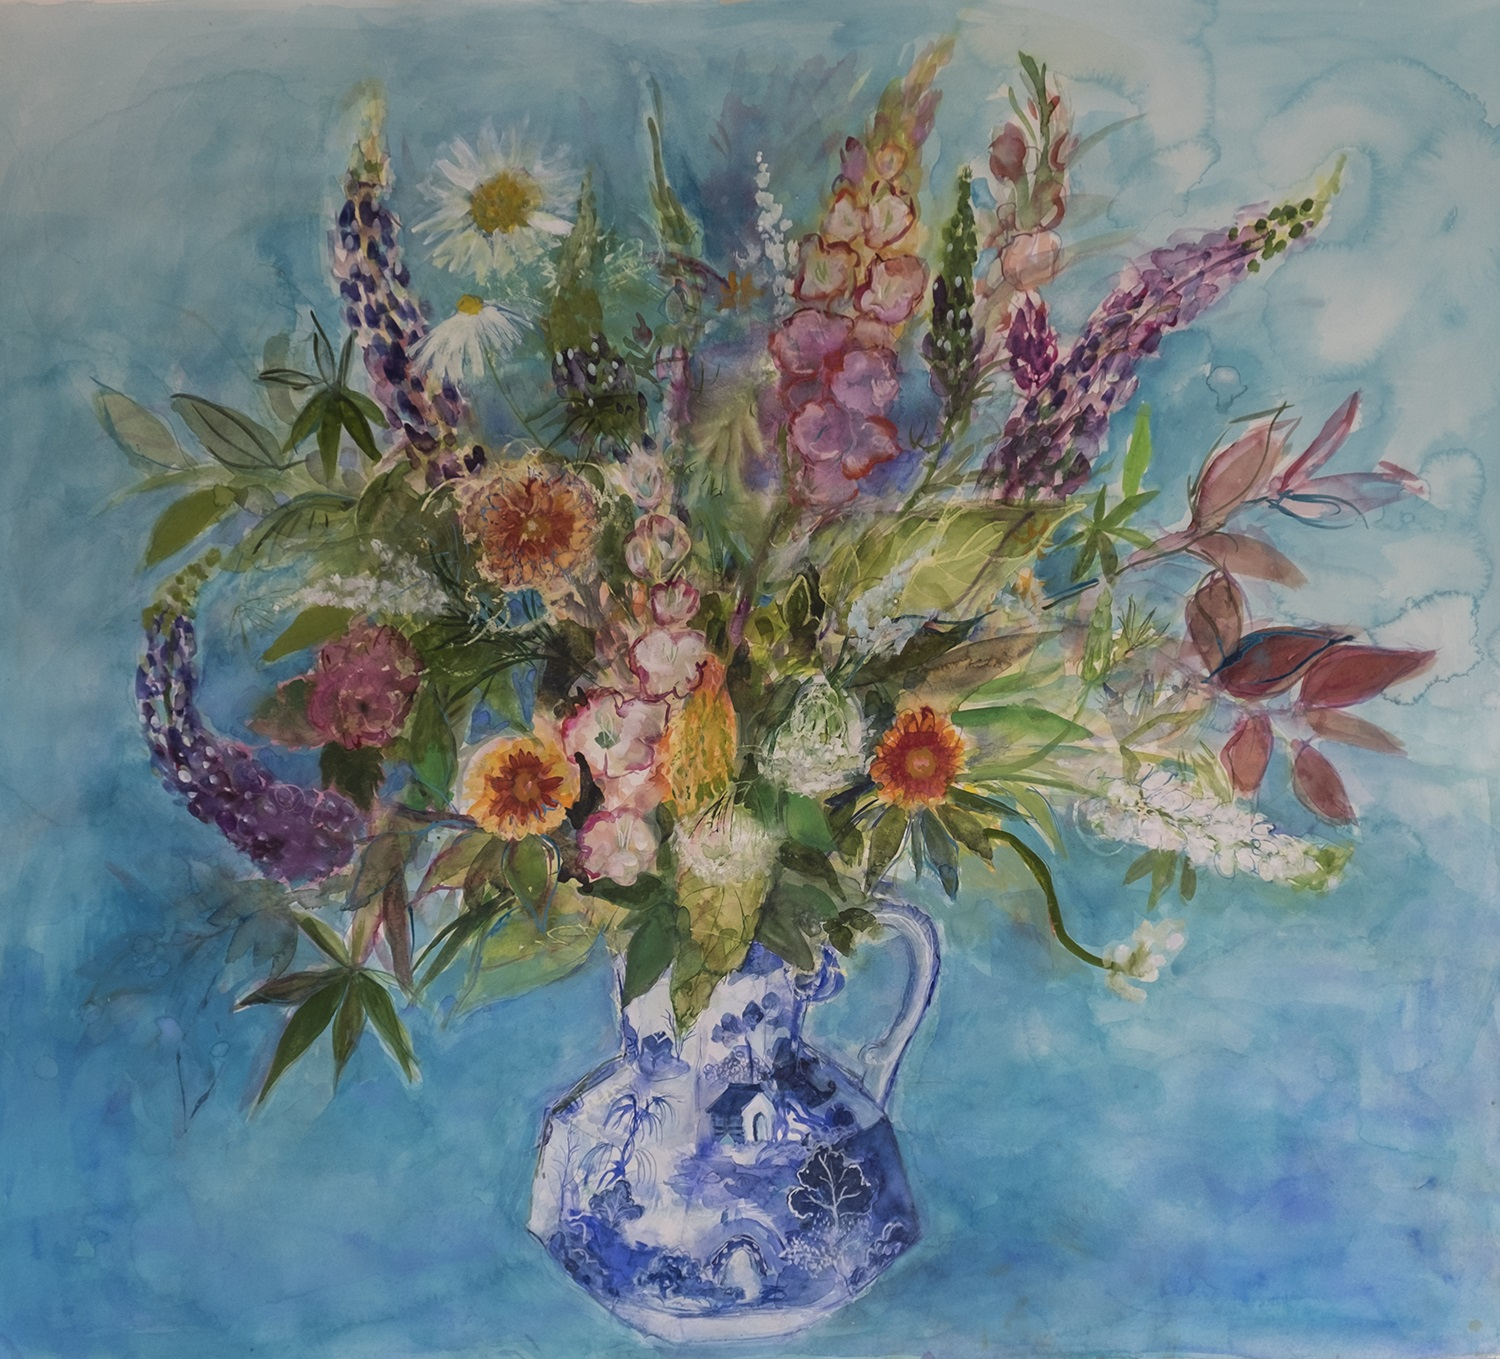 'Flowers from an Edinburgh Garden' Ann Oram Watercolour and gouache, ink and oil pastel on Arches Paper, 2017